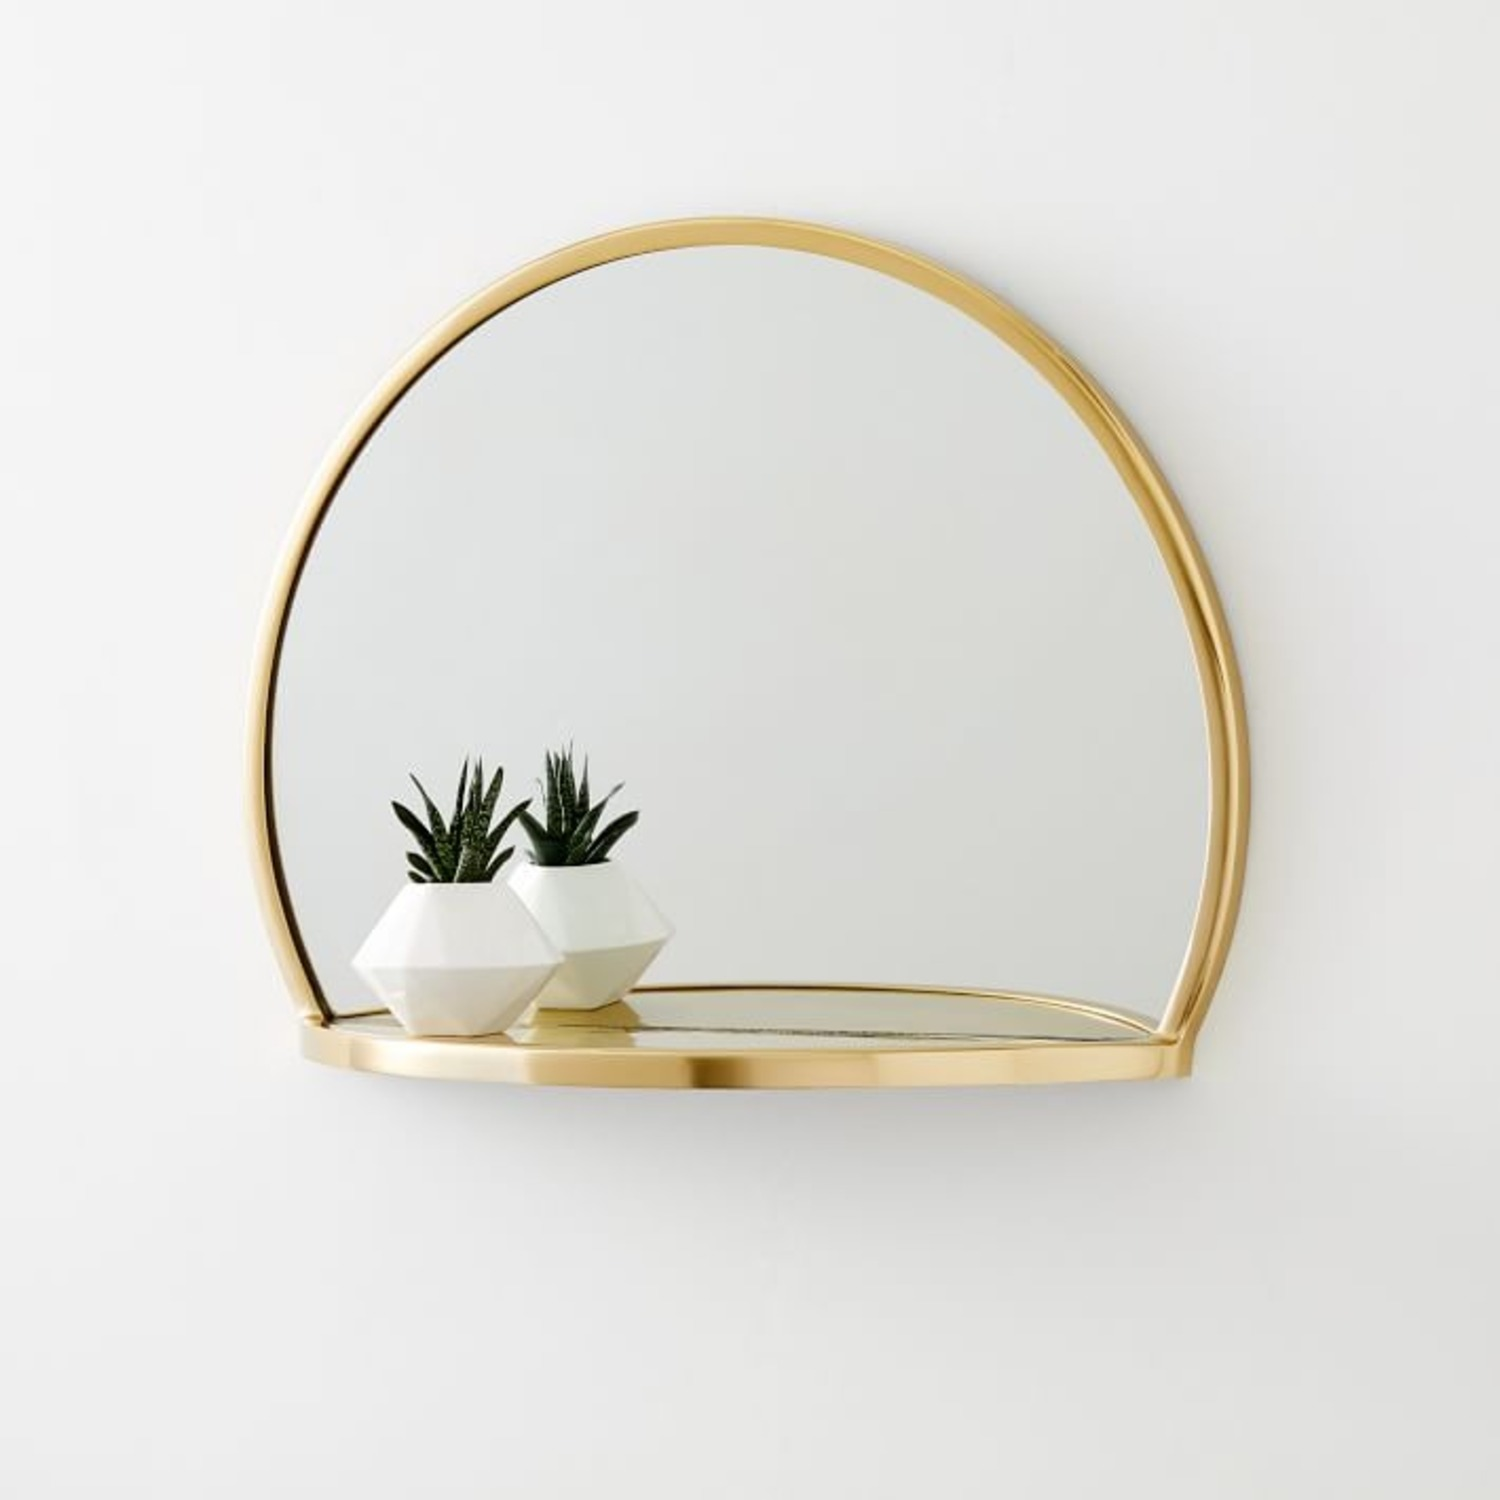 West Elm Decorated Brass Circle Shelf Mirror - image-3